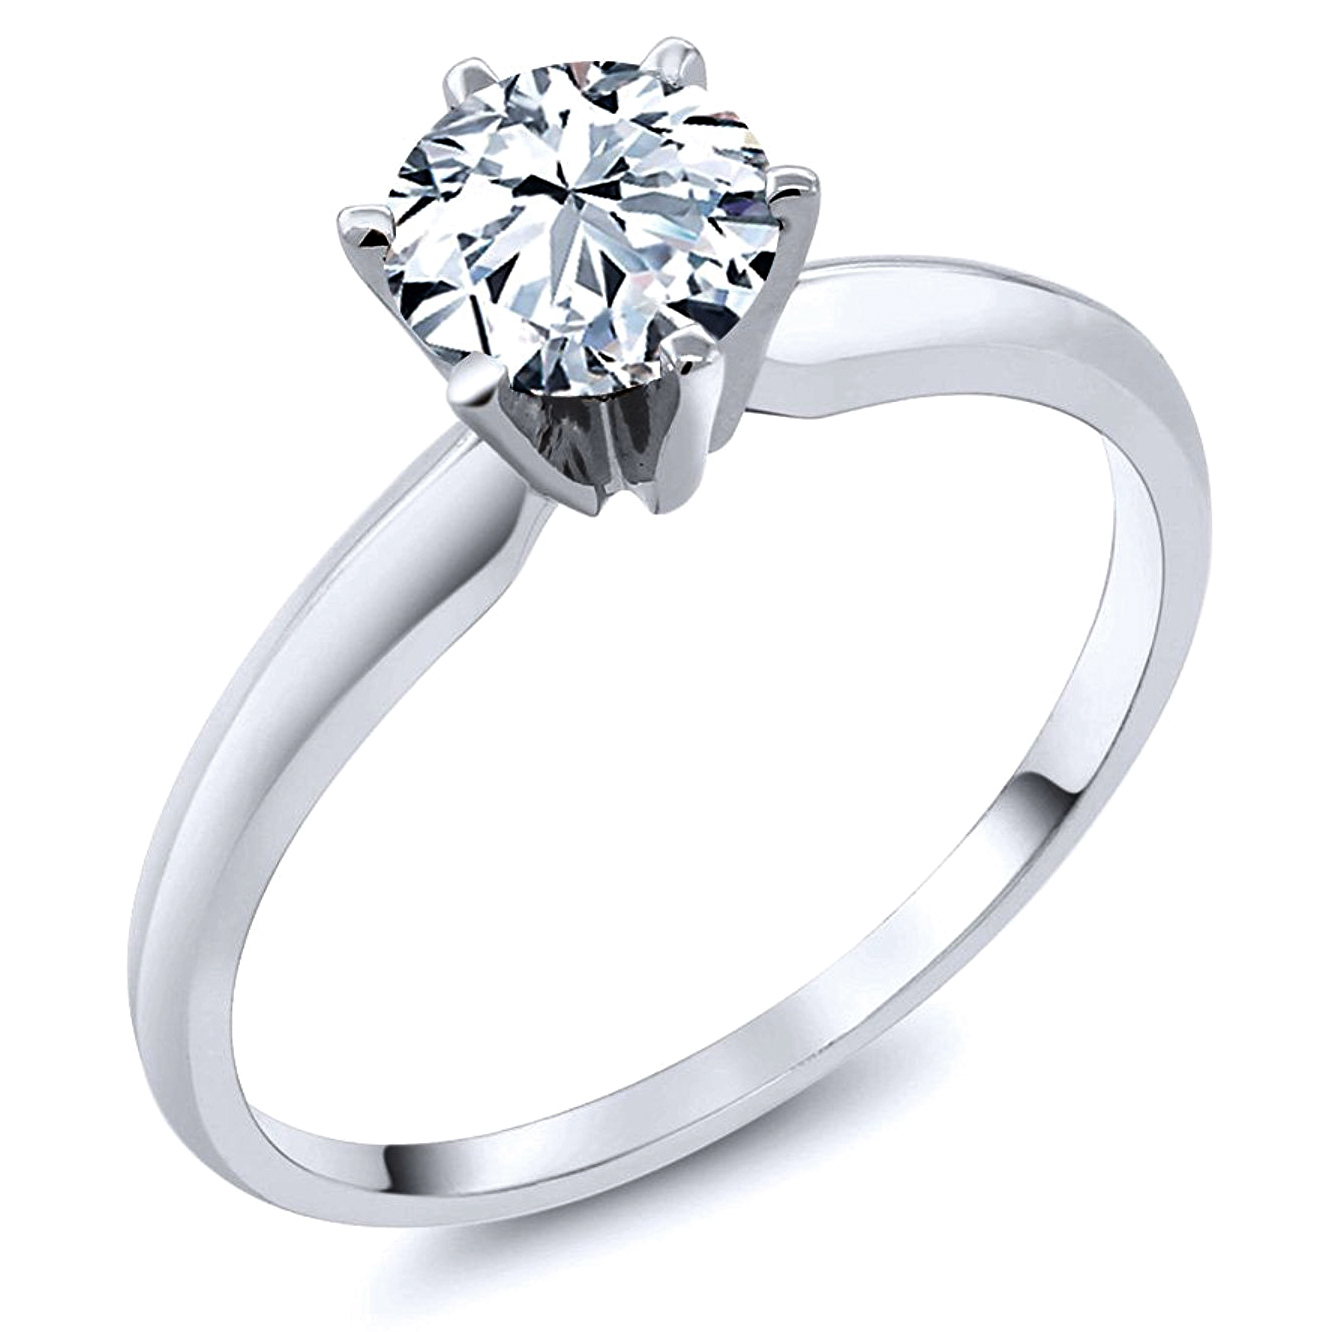 Sterling Silver Cubic Zirconia Solitaire 1.25 Carat tw Round Cut 6-Prong Set CZ Engagement Ring